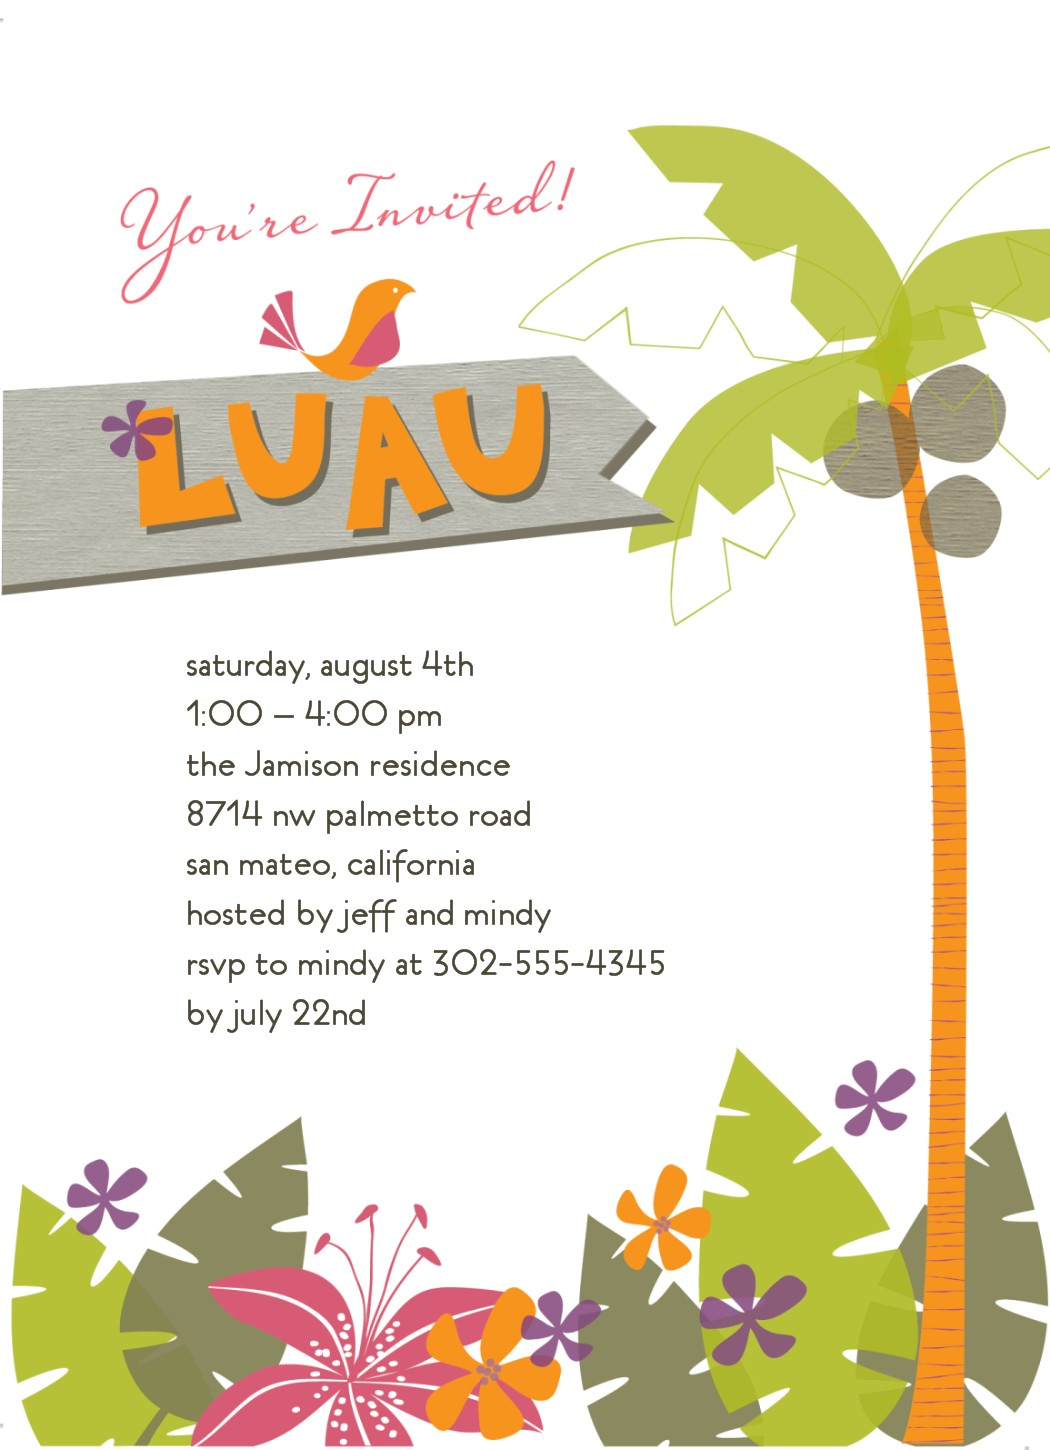 8 Best Images of Luau Template Free Printable Stationery - Free Printable Luau Borders, Free